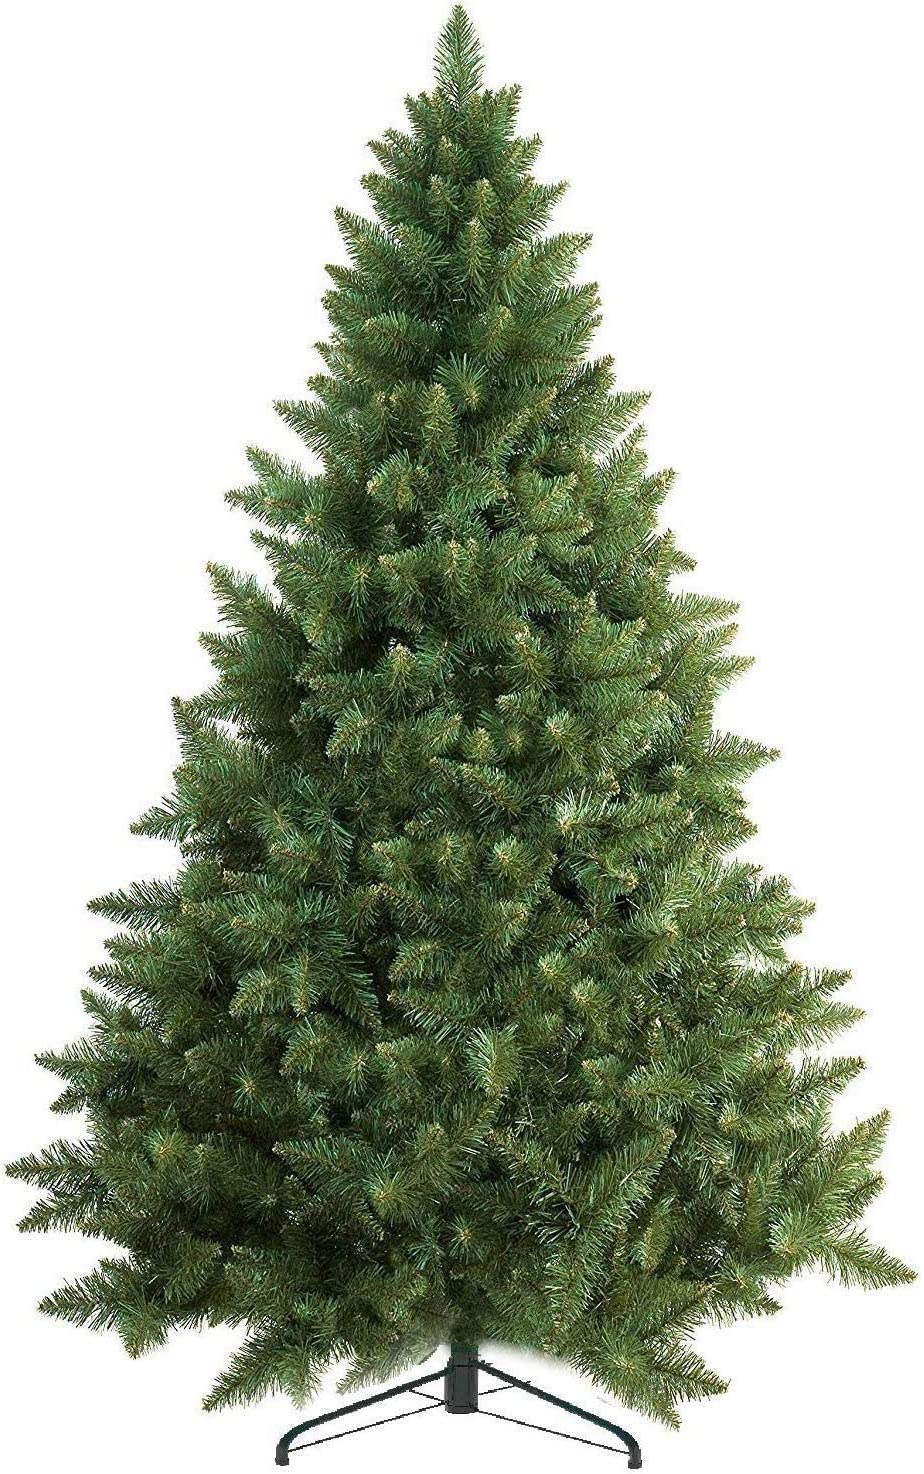 Prextex 6 Feet Premium Artificial Spruce Hinged Christmas Tree Lightweight/Easy to Assemble with Christmas Tree Metal Stand 1200 Tips